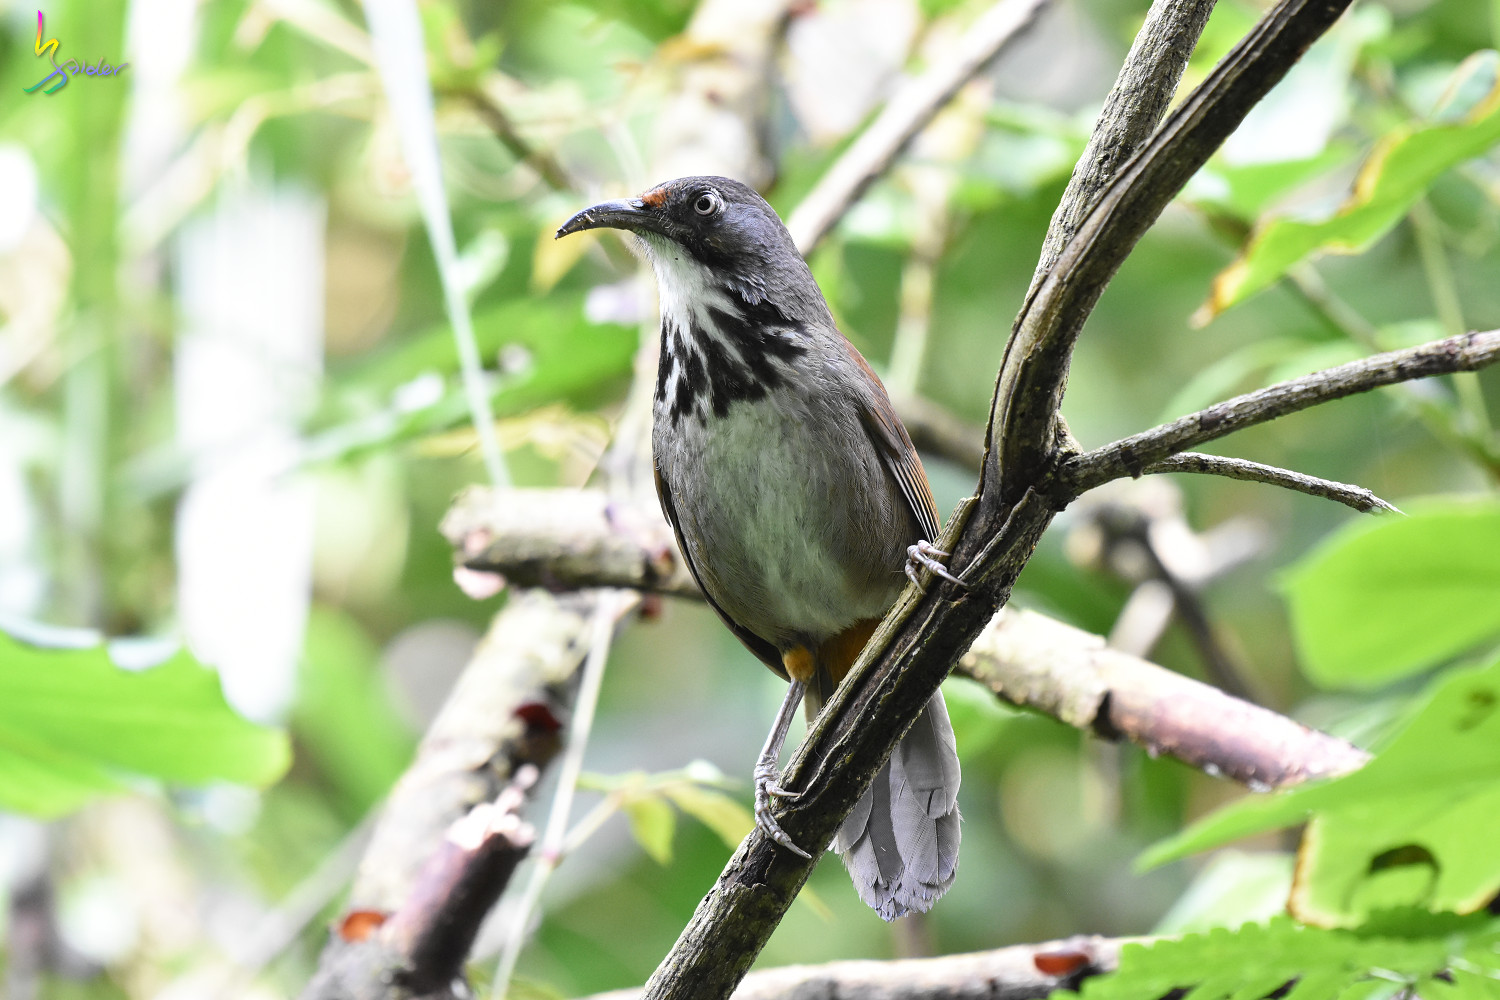 Rusty-cheeked_Scimitar-Babbler_0662